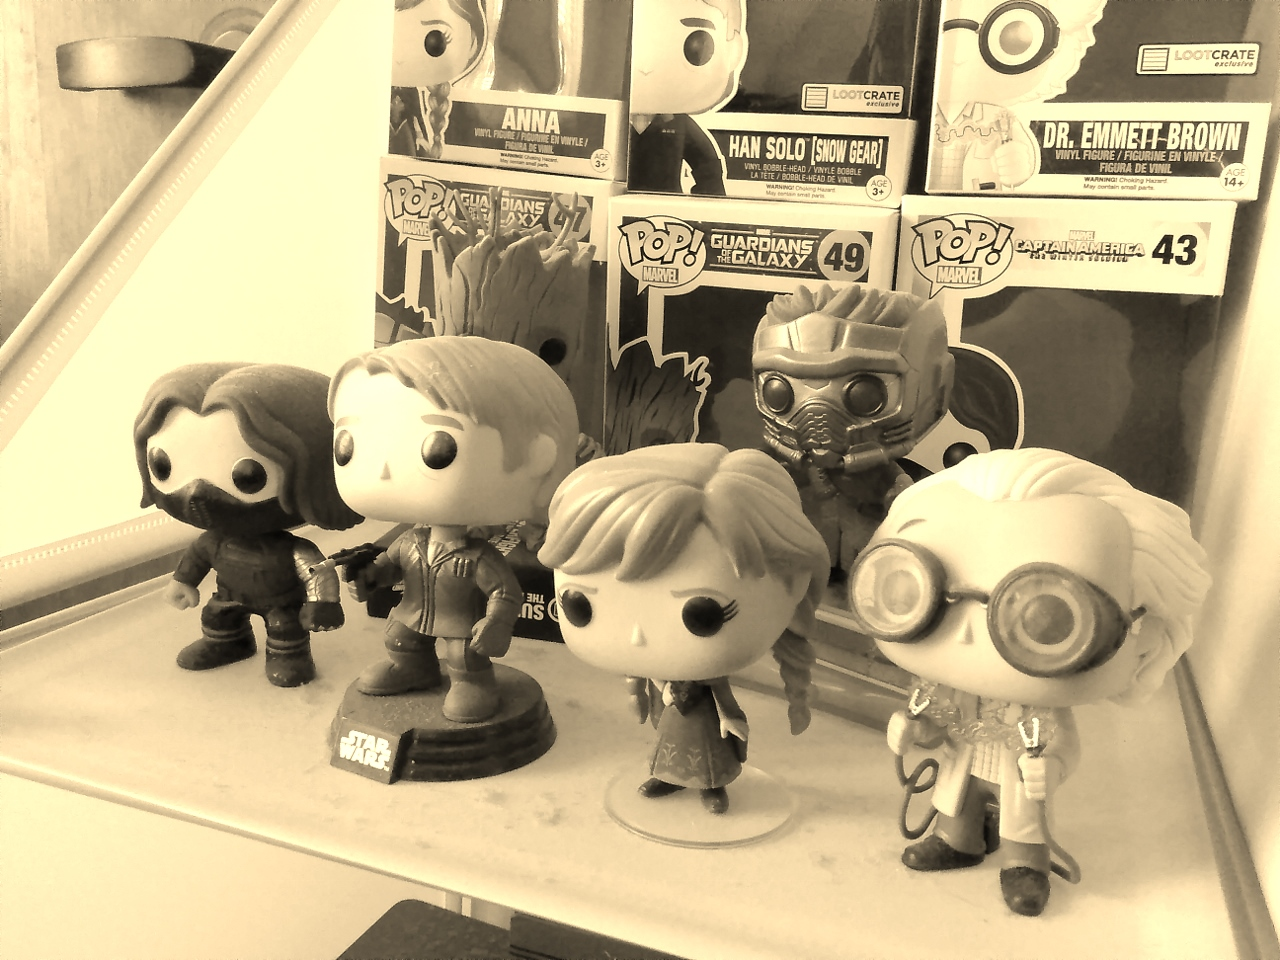 Geeky Toys in Sepia 1-6-2018 9-37-39 AM